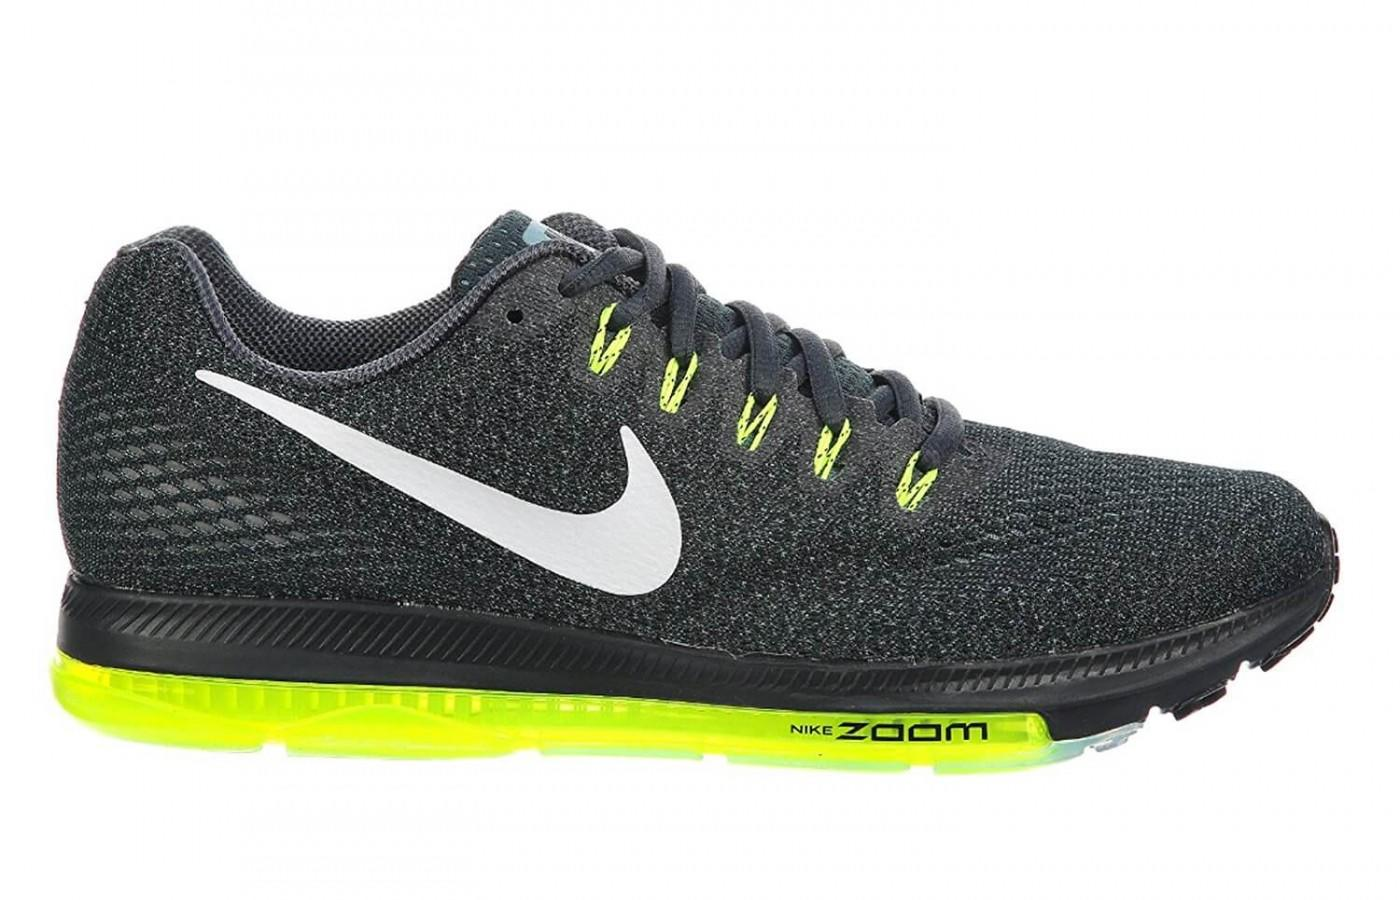 Nike Combines Style And Structure For A Great Overall Shoe